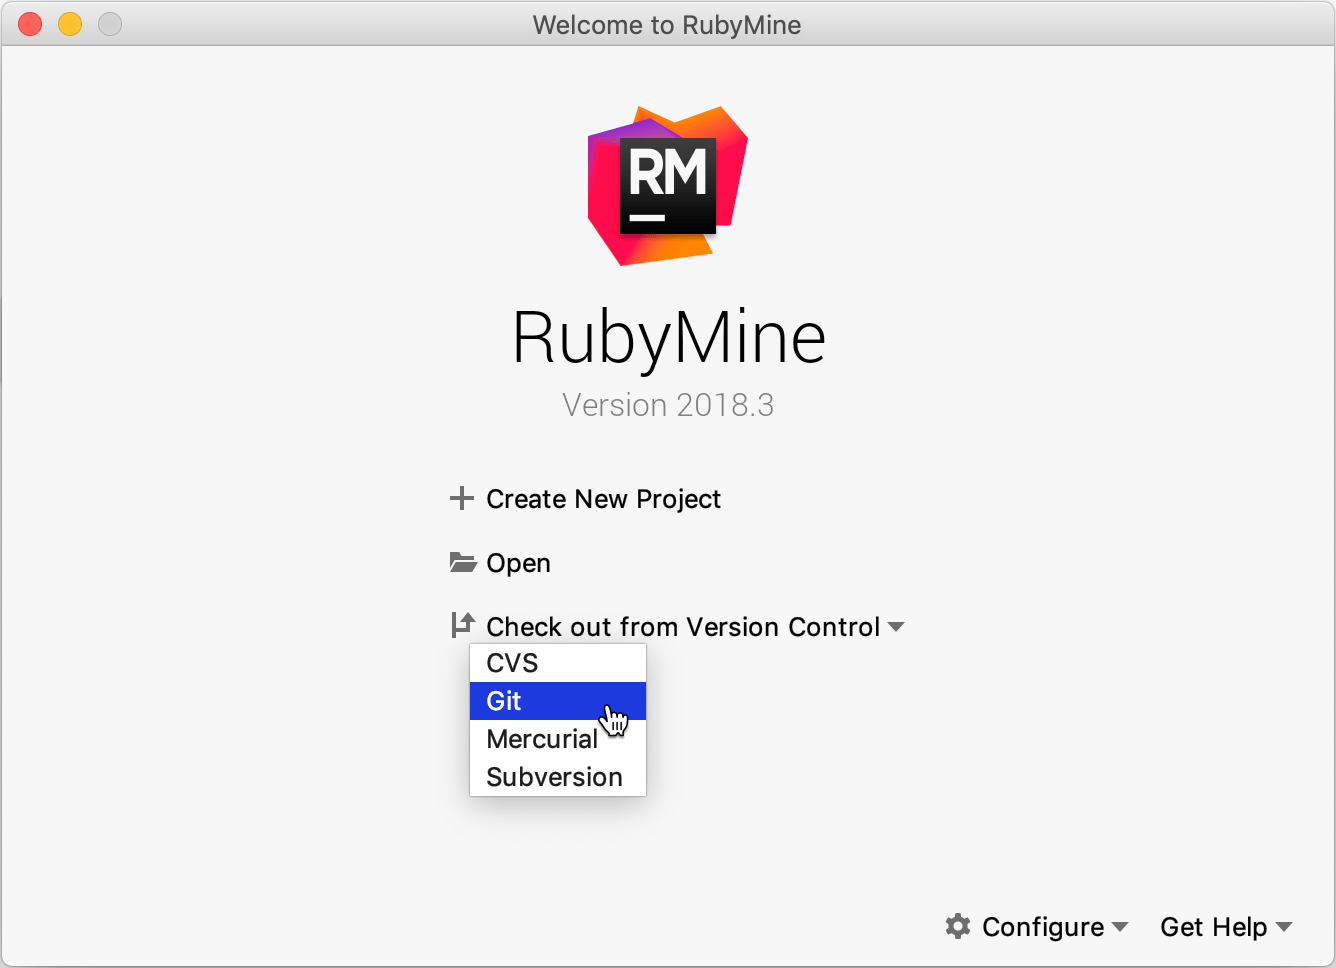 Getting started guide - Help | RubyMine